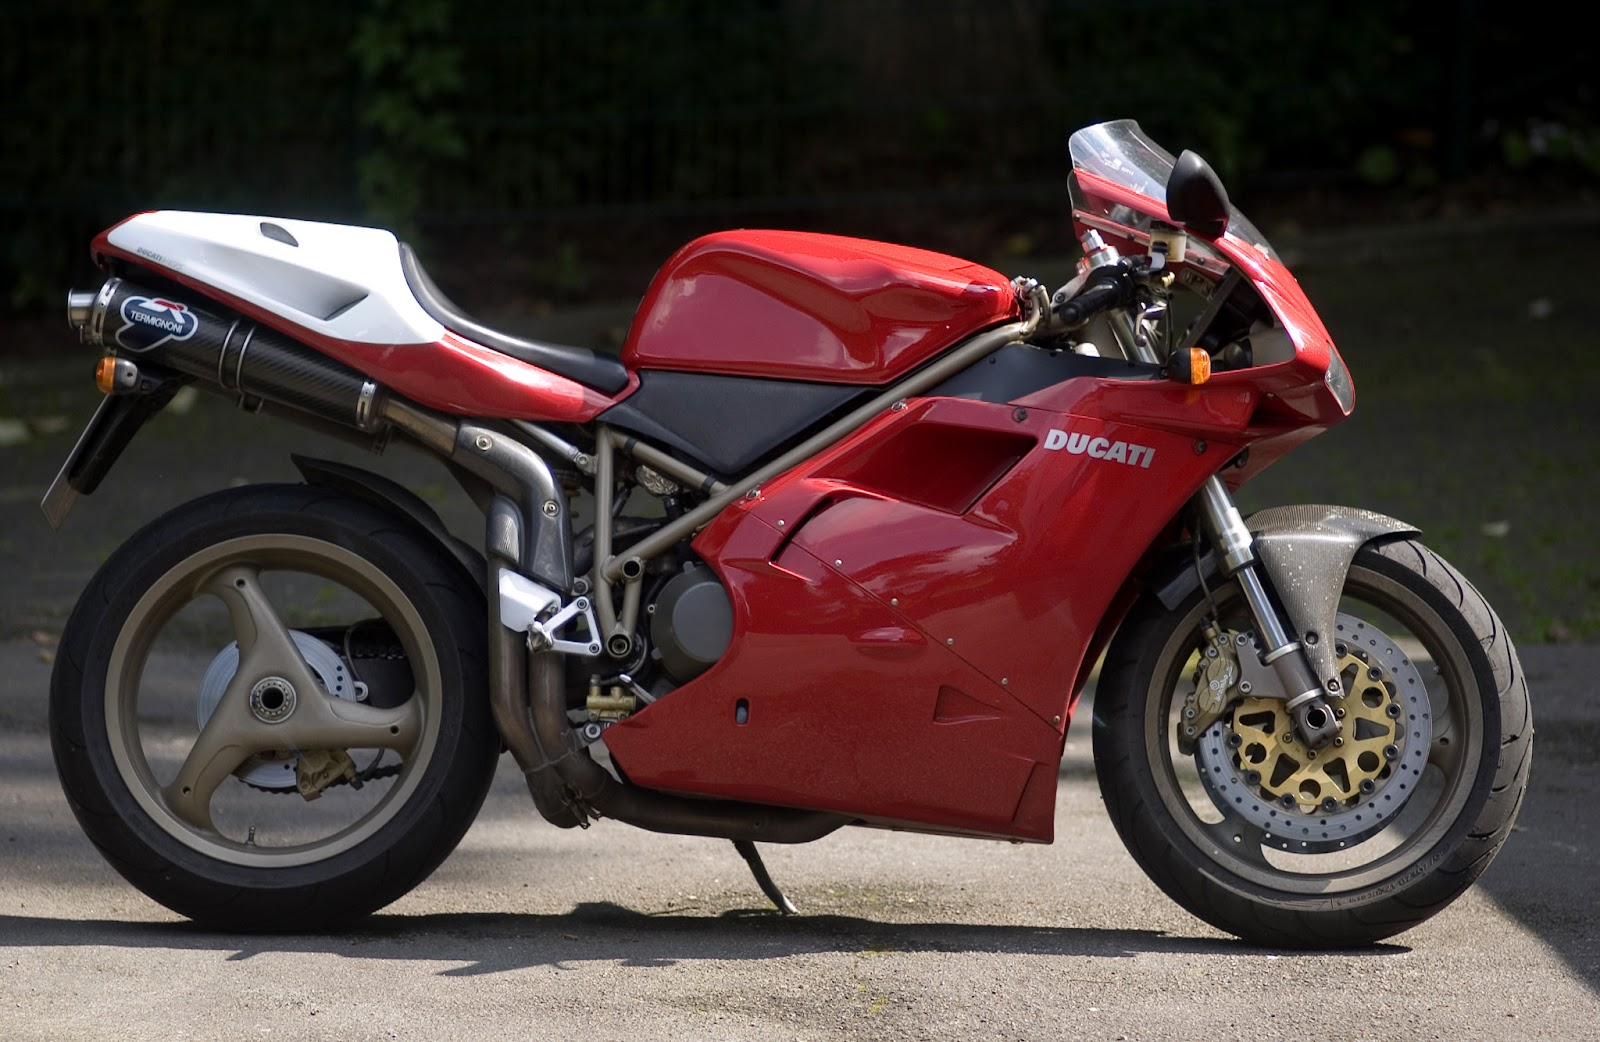 Oddbike Ducati 916 Sp Sps Ultimate Desmoquattro